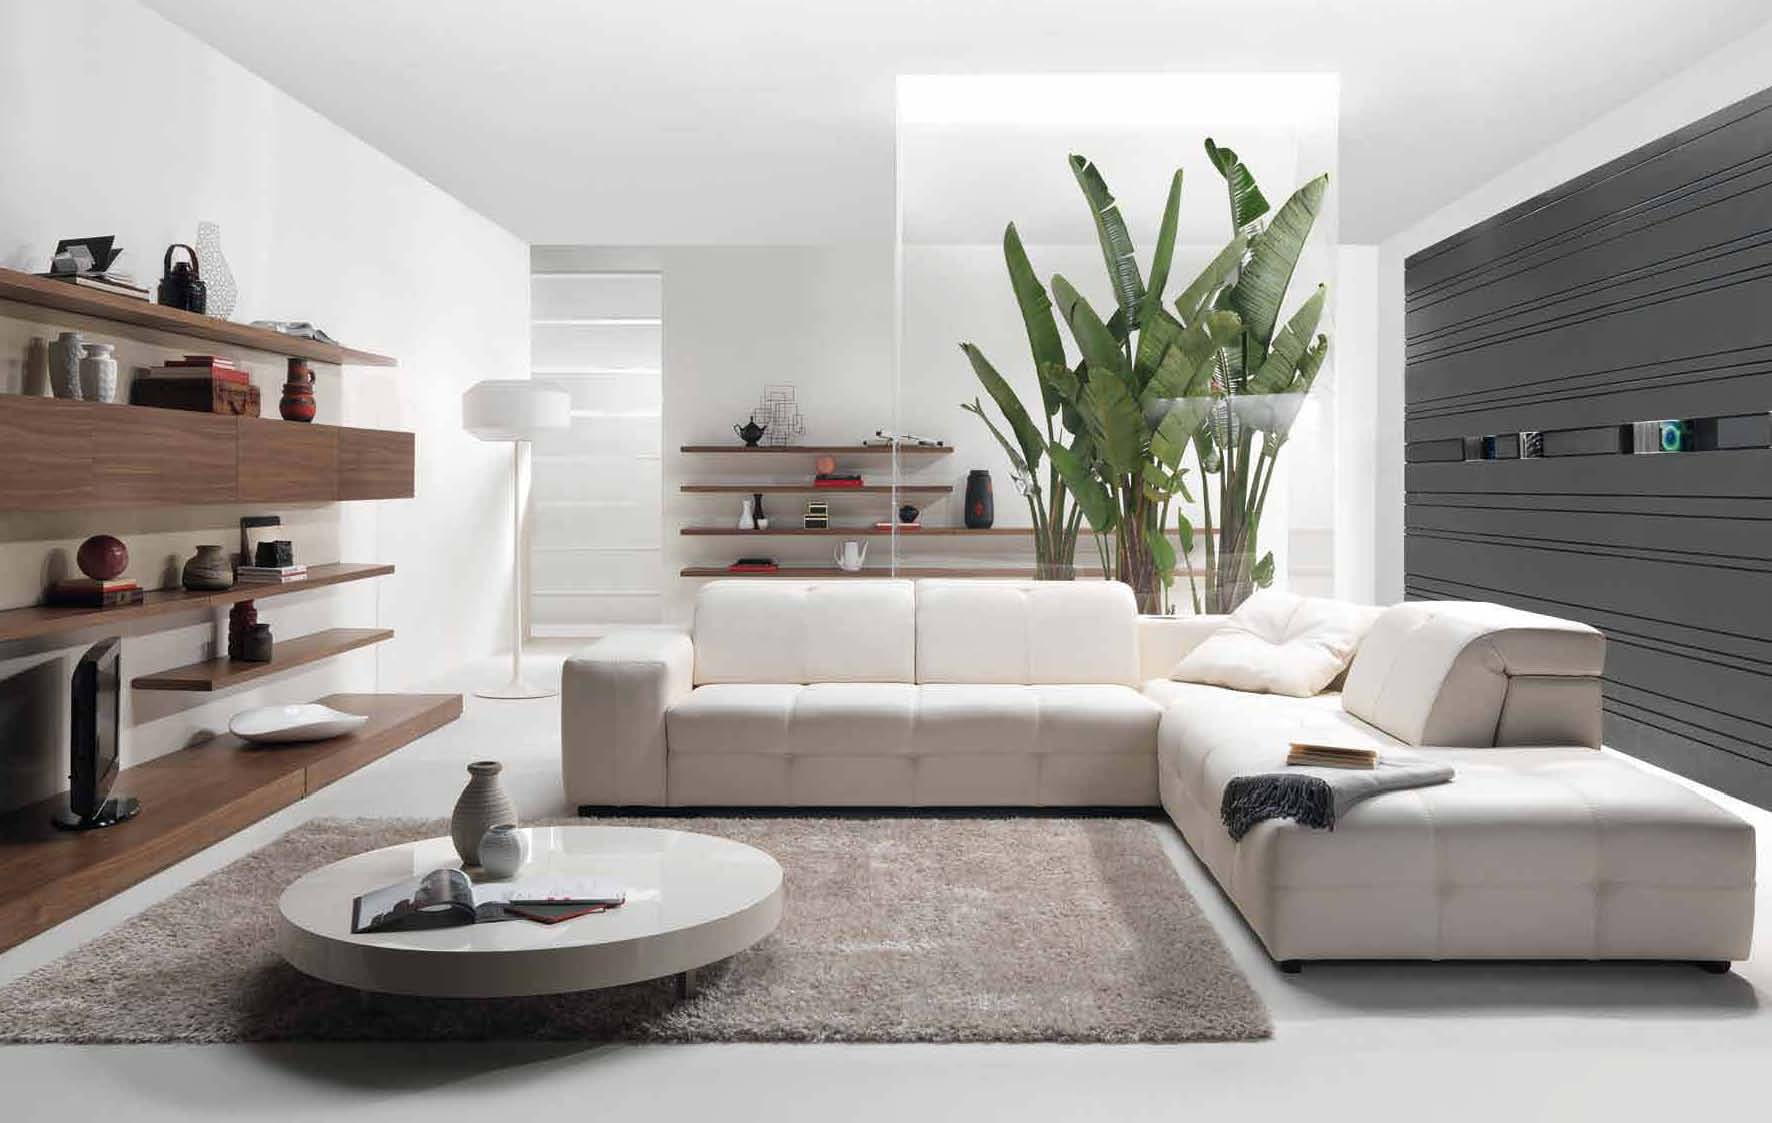 Great free the perfect how to design a house interior design gallery from house gmmiwuj